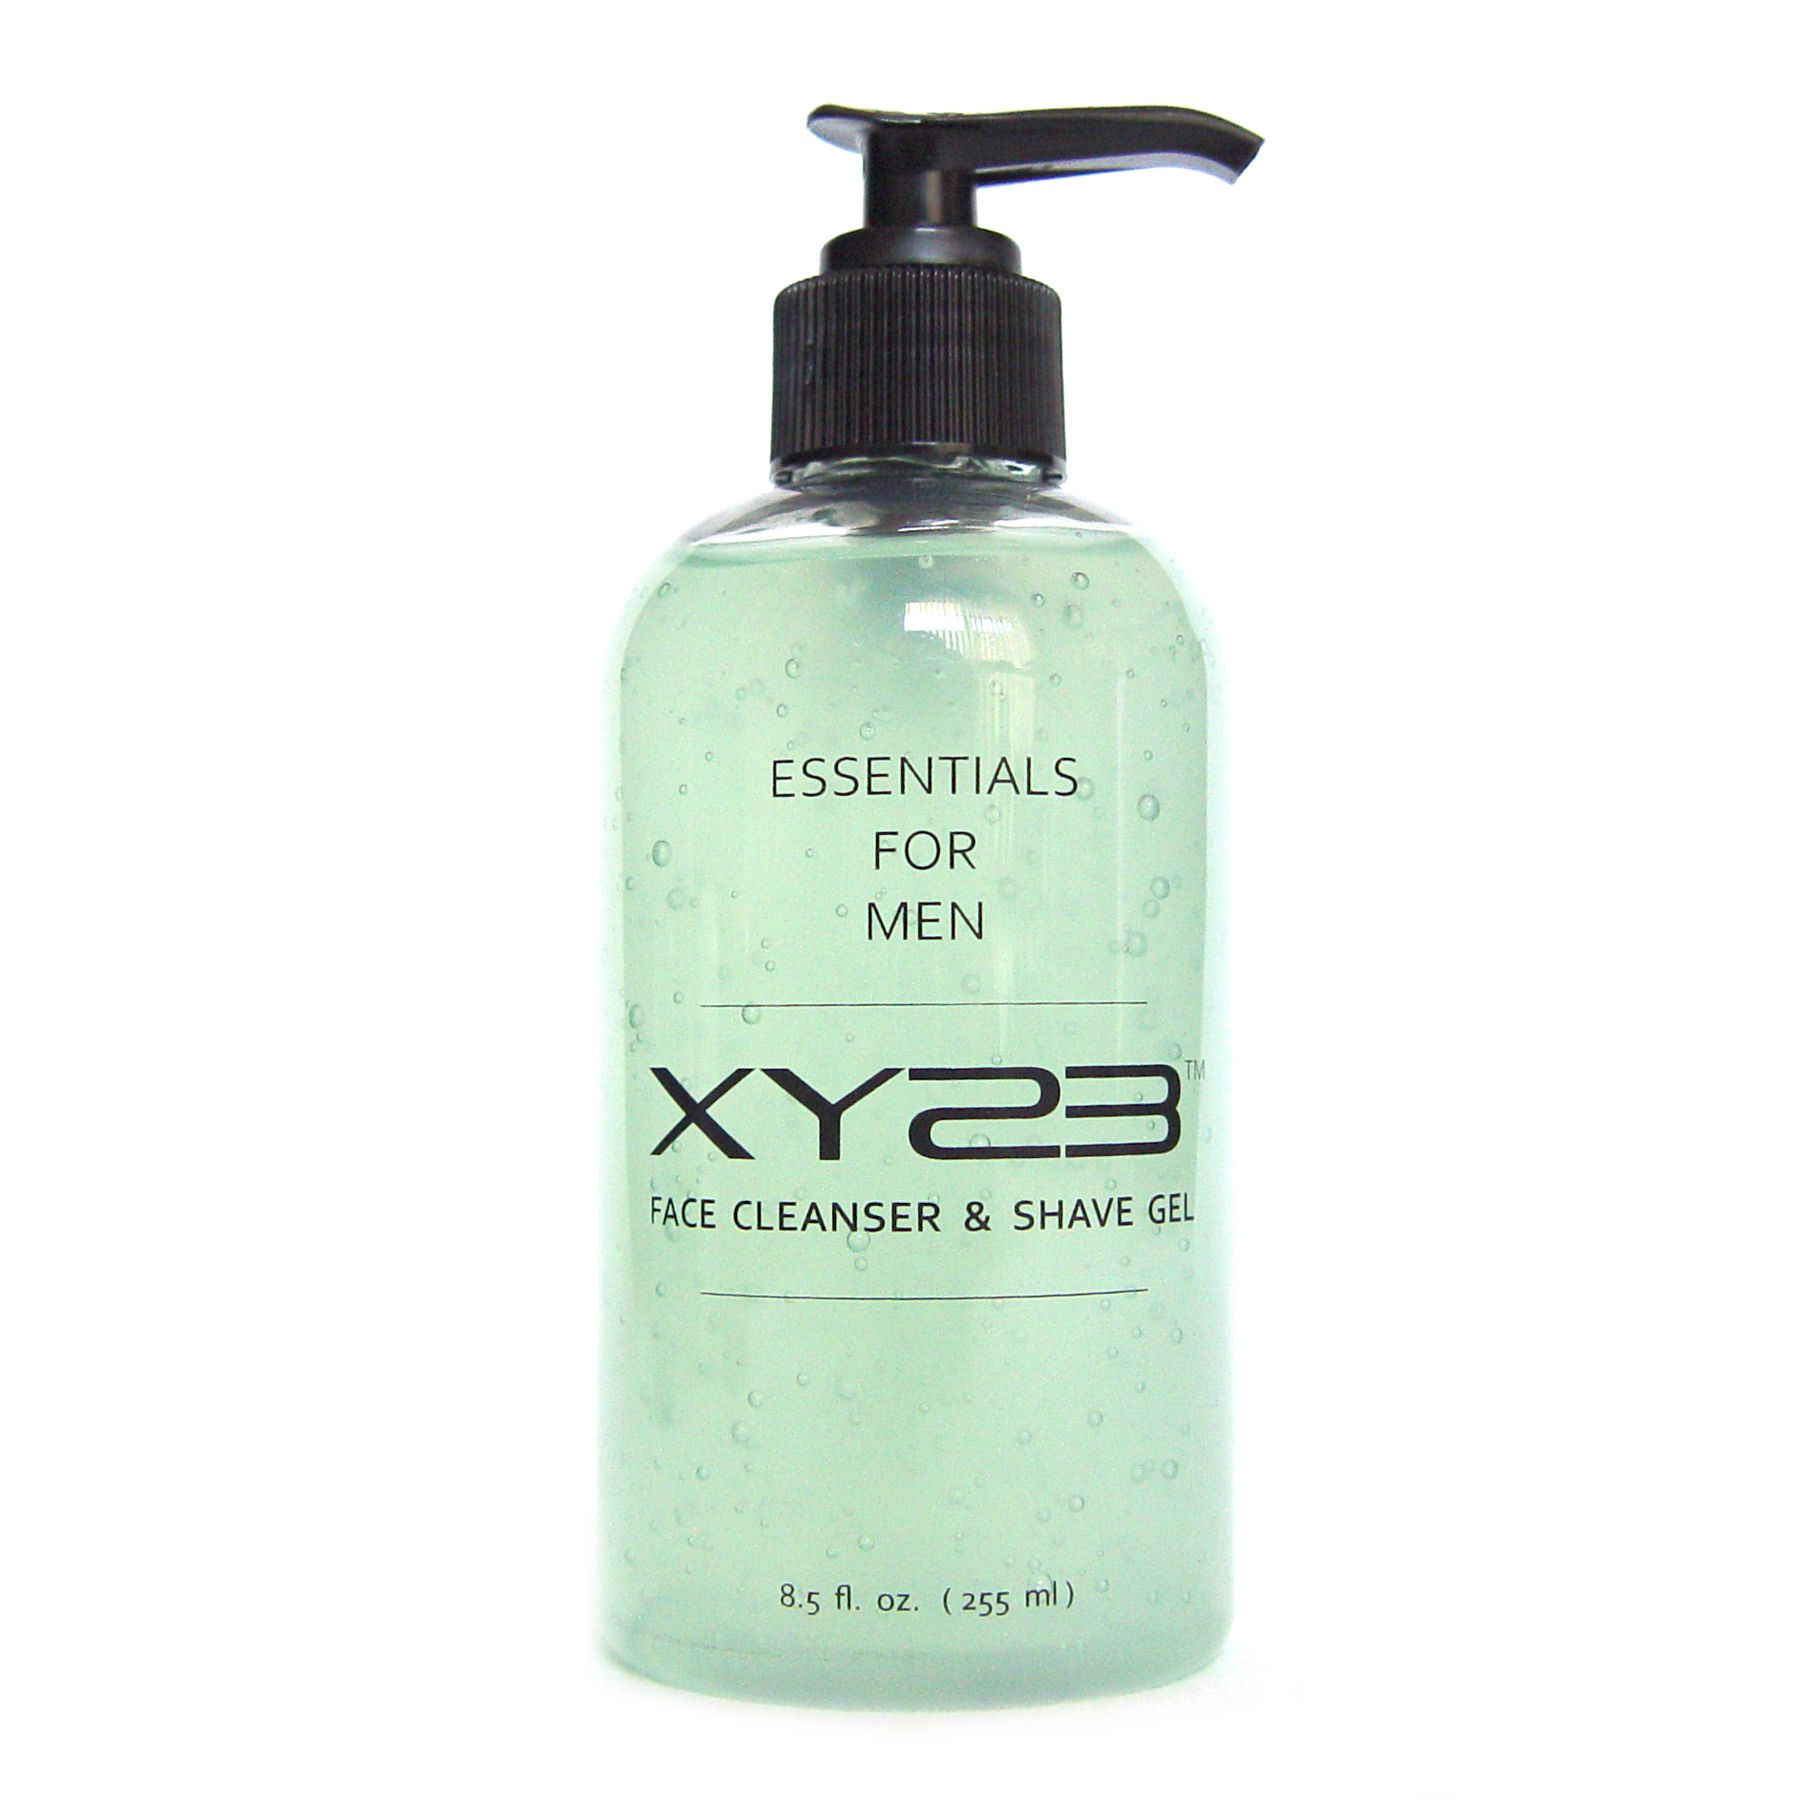 XY23 Face Cleanser & Shave Gel  • Clean and shave in one step  • Low-foam, clear gel allows precise shaving  • Lifts beard hair for a close, irritation-free shave  • Works against breakouts  • Keeps skin hydrated  • 8.5 fluid ounces  http://www.xy23formen.com/store/p1/Face_Cleanser_%26_Shave_Gel.html